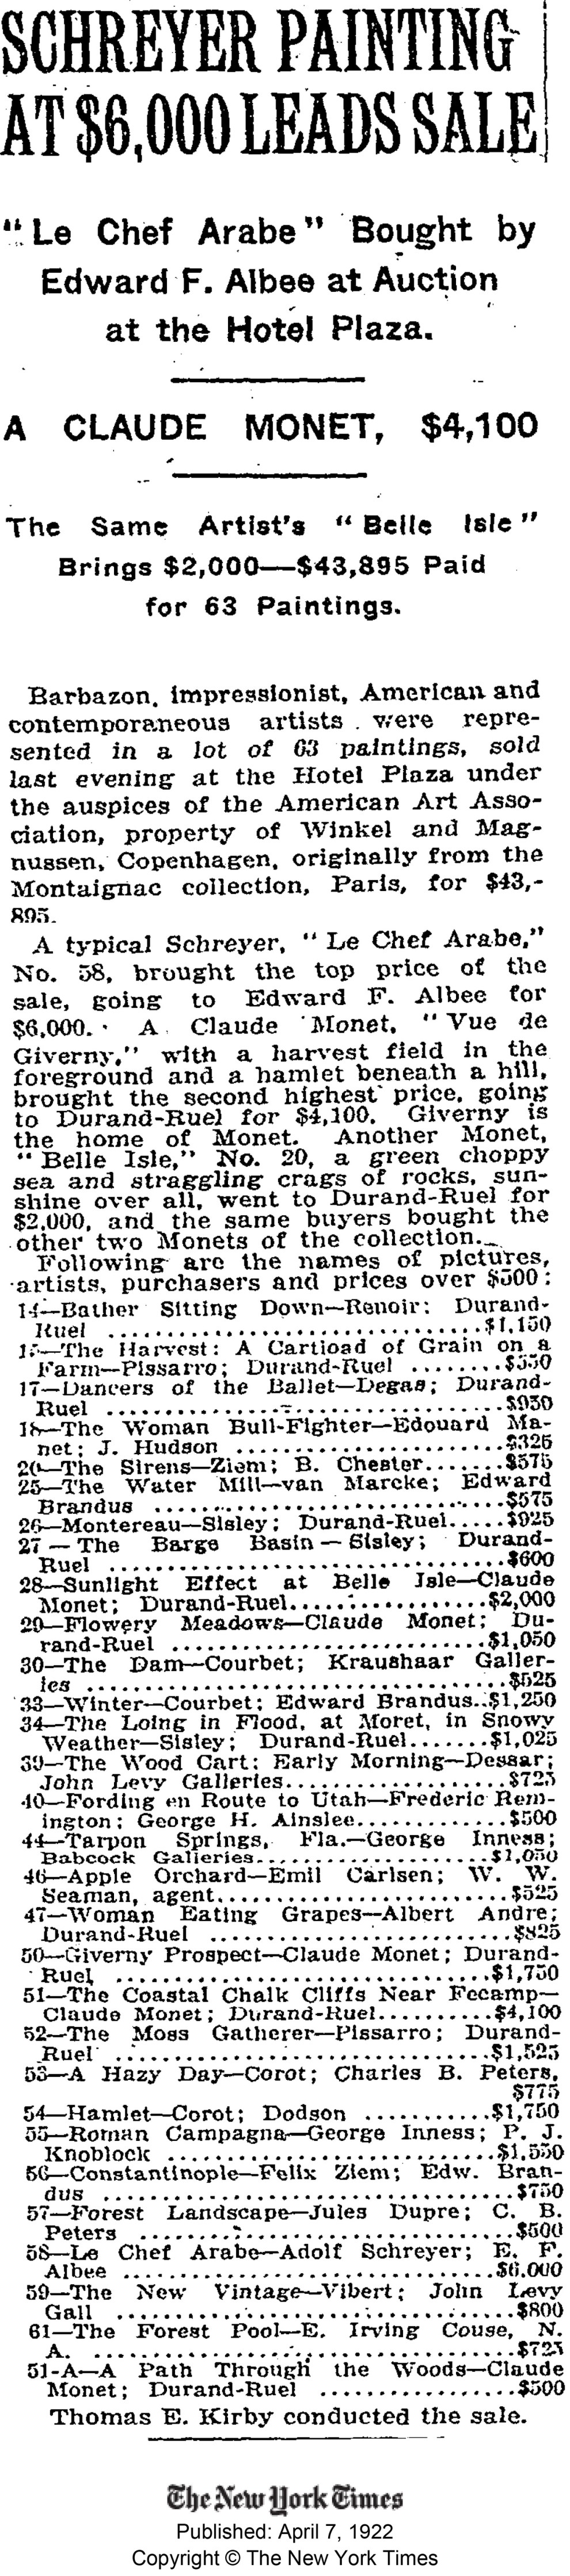 """1922 New York Times, New York, NY, """"Schreyer Painting At $6,000 Leads Sale"""", April 7"""